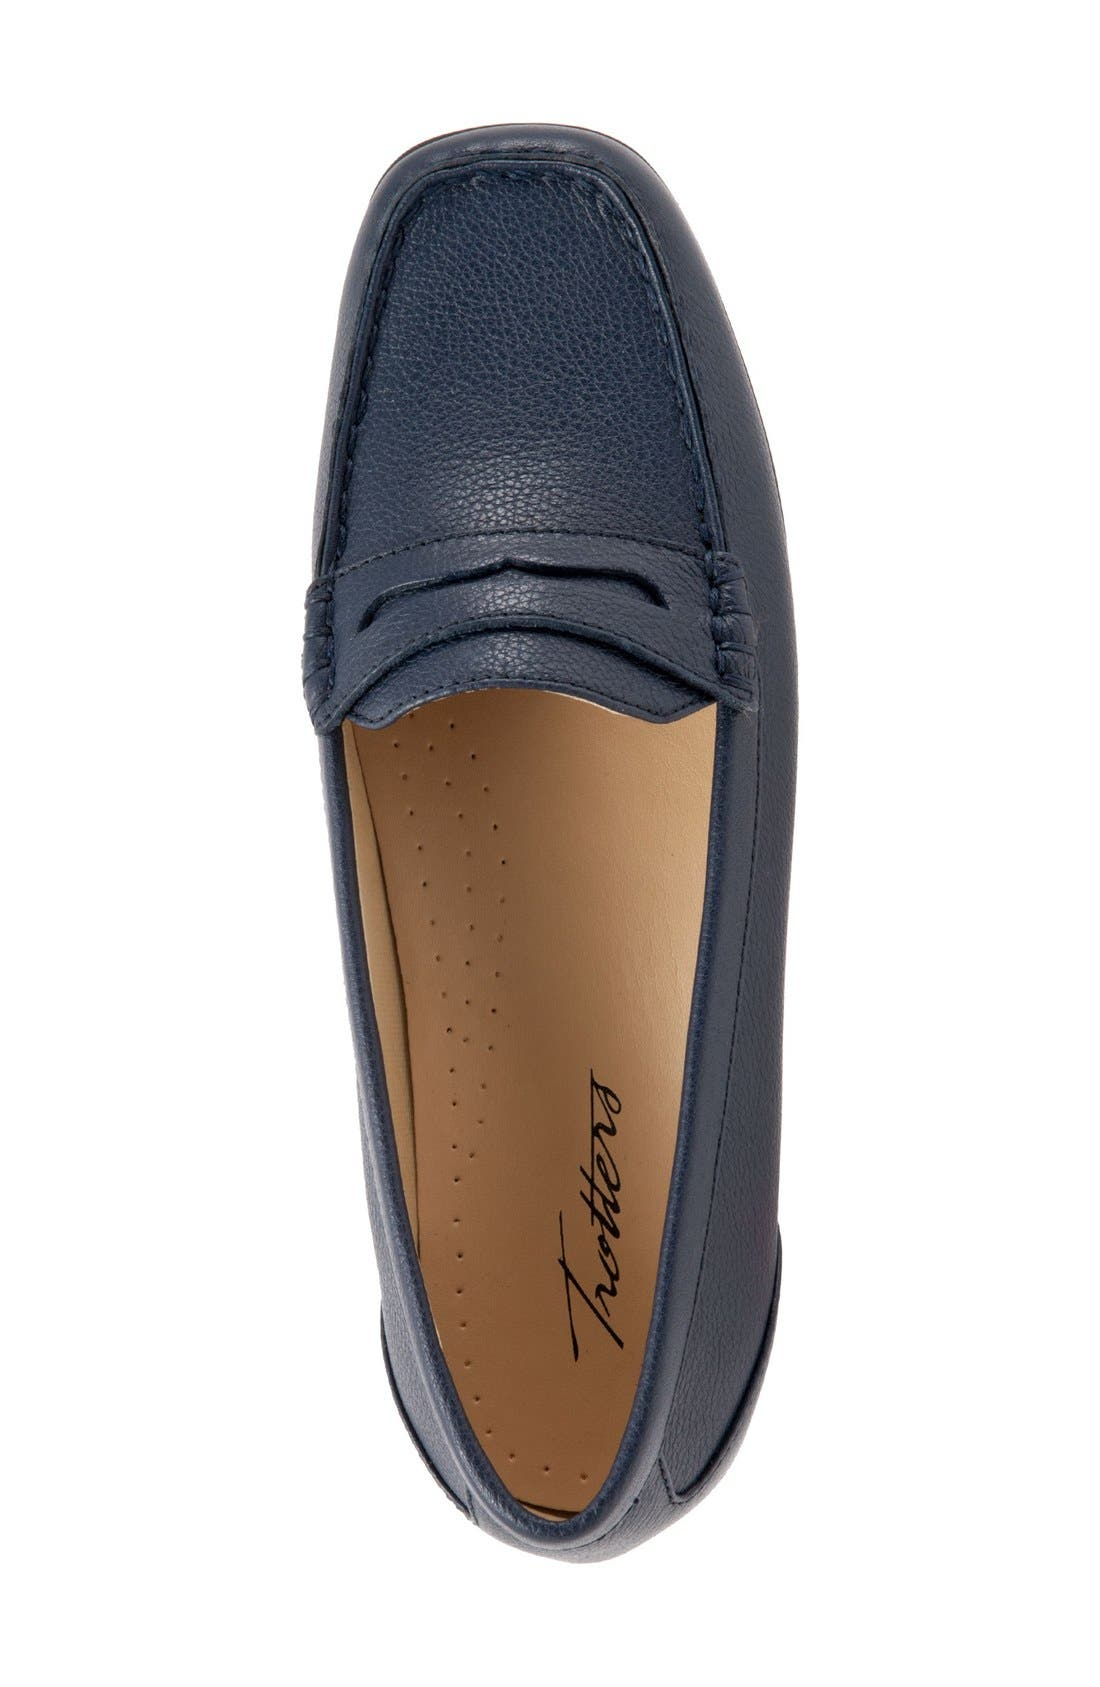 Alternate Image 3  - Trotters 'Staci' Penny Loafer (Women)